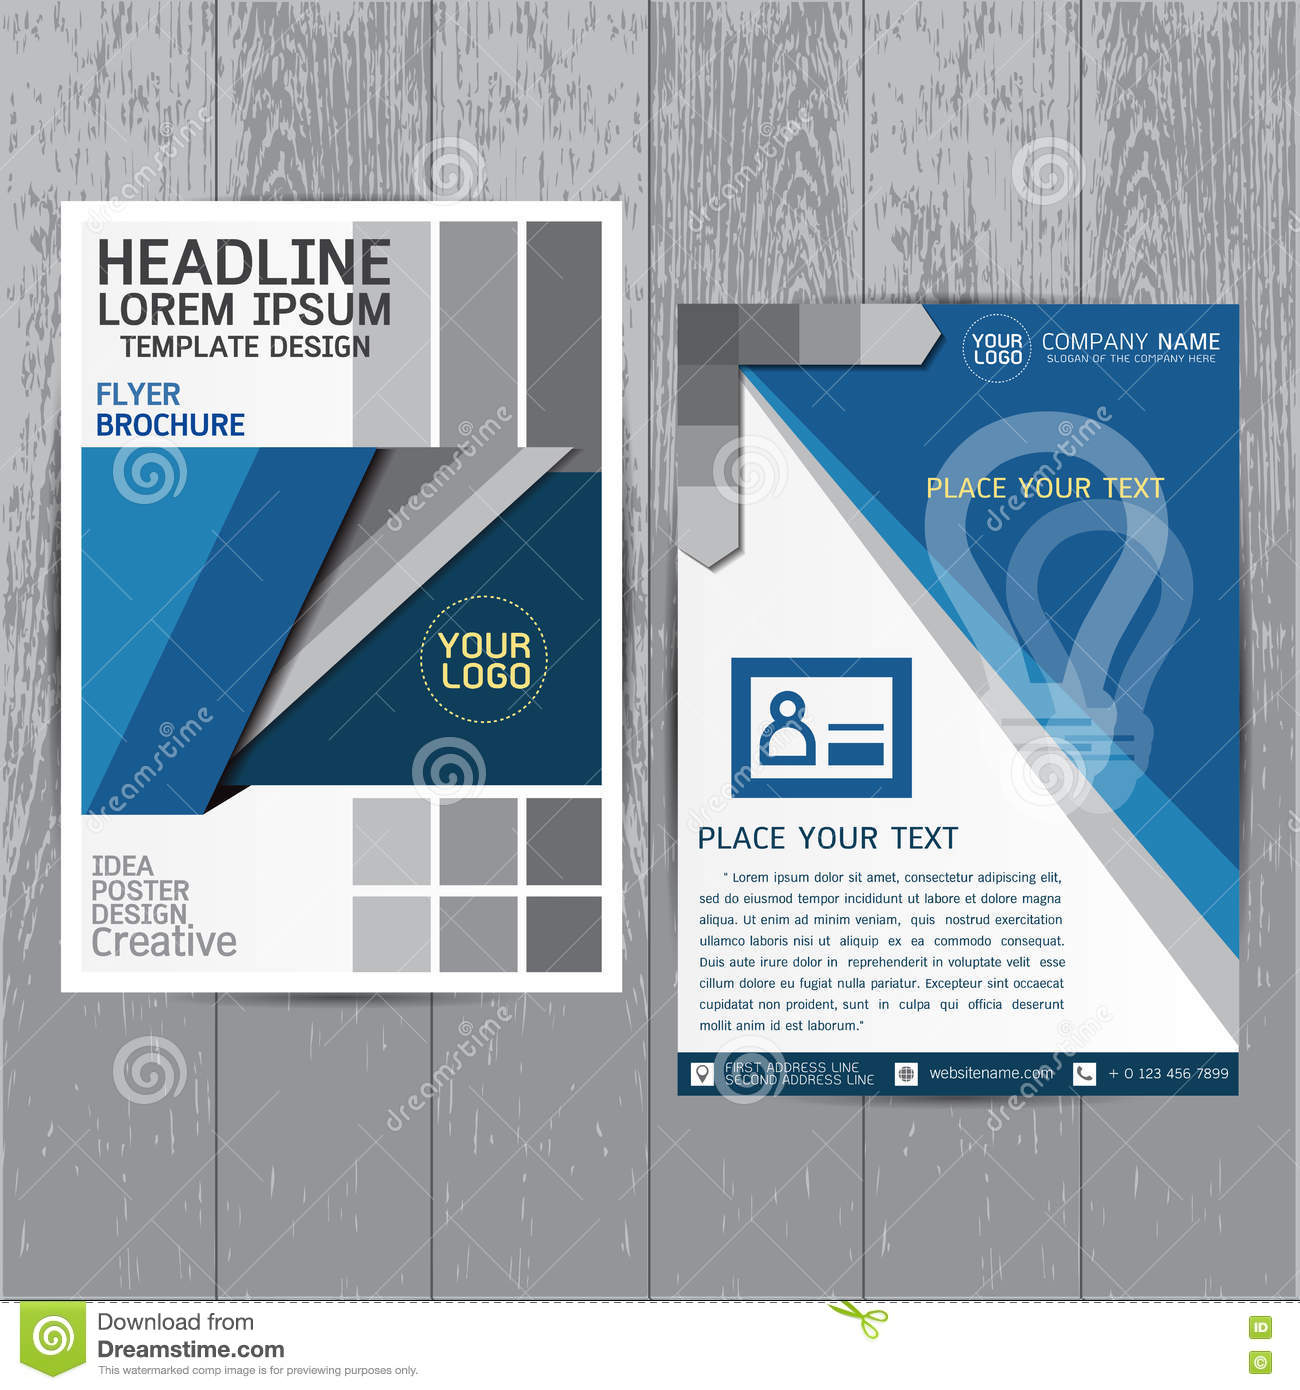 Poster design layout templates - Brochure Flyers Poster Design Layout Template